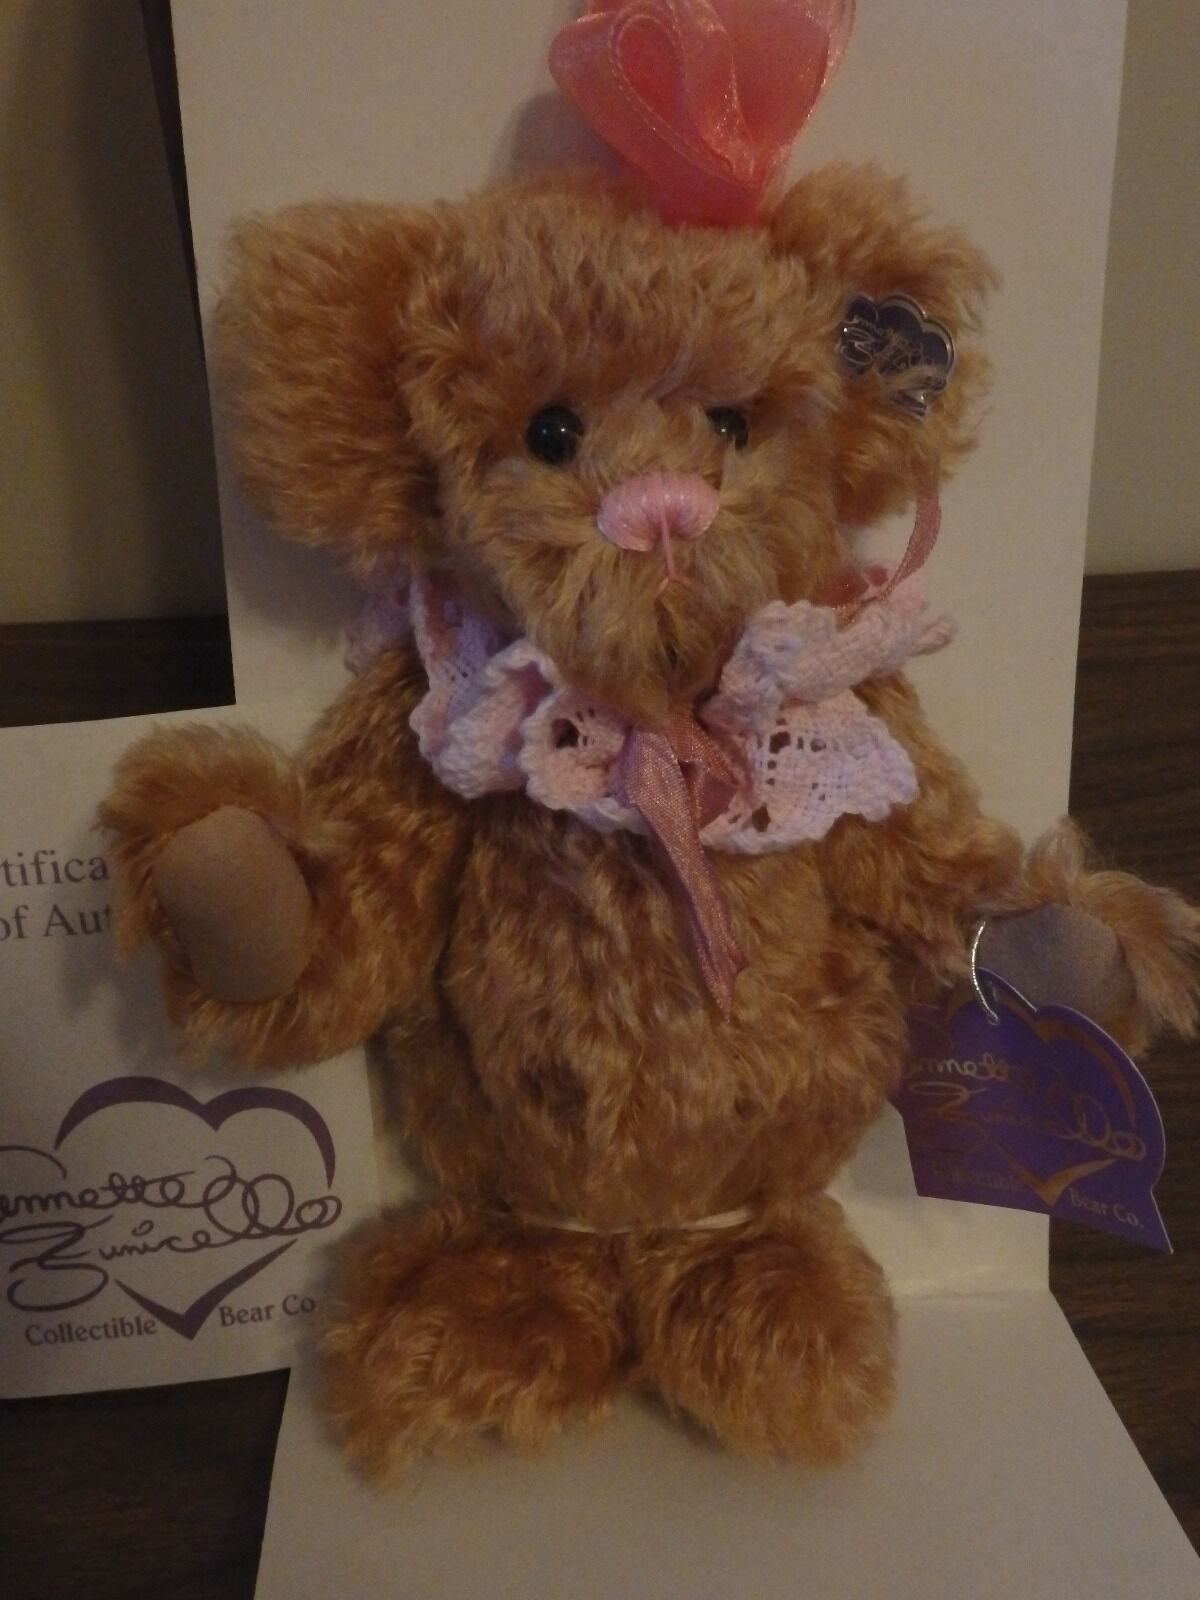 Annette Funicello Mohair Bear Cindy Lou  489 of 3000  NIB  Never Displayed